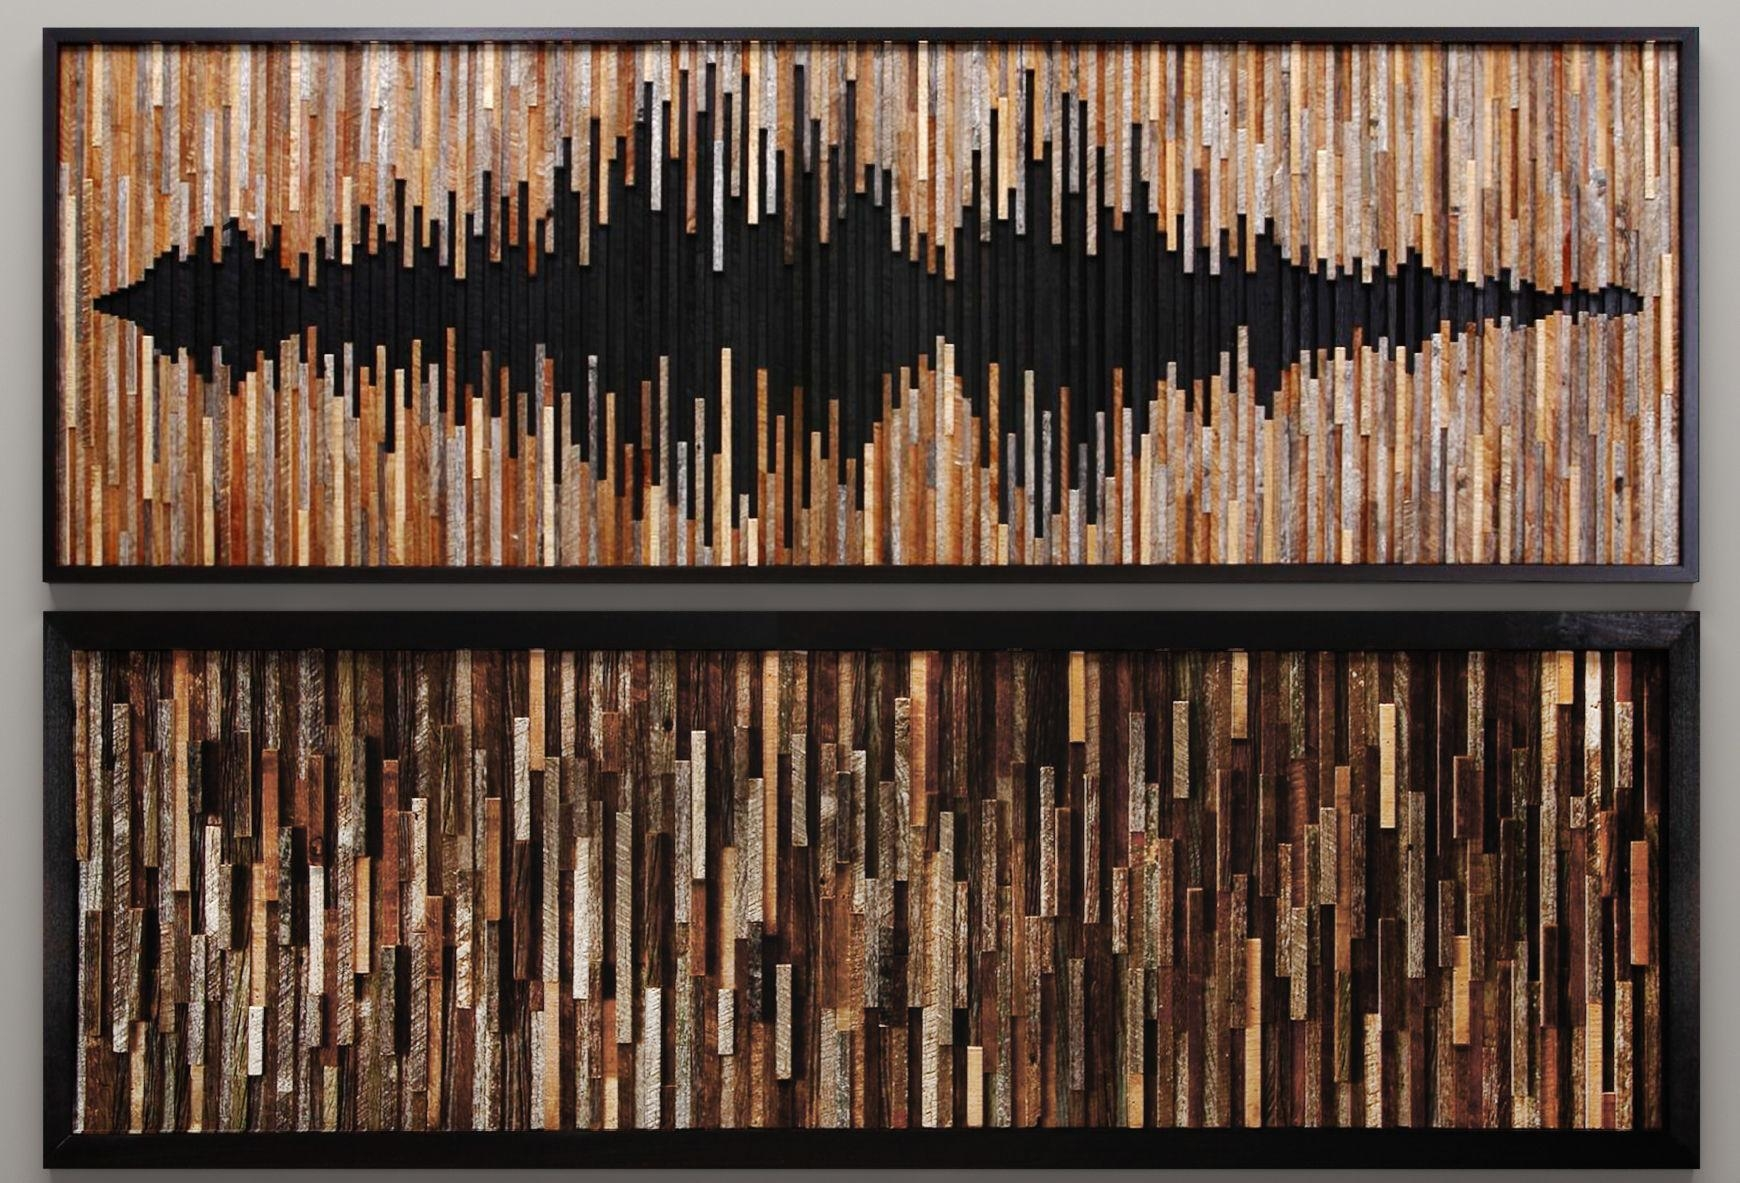 Wood Wall Art 46 3D Model | Cgtrader With Wall Art On Wood (Image 16 of 20)